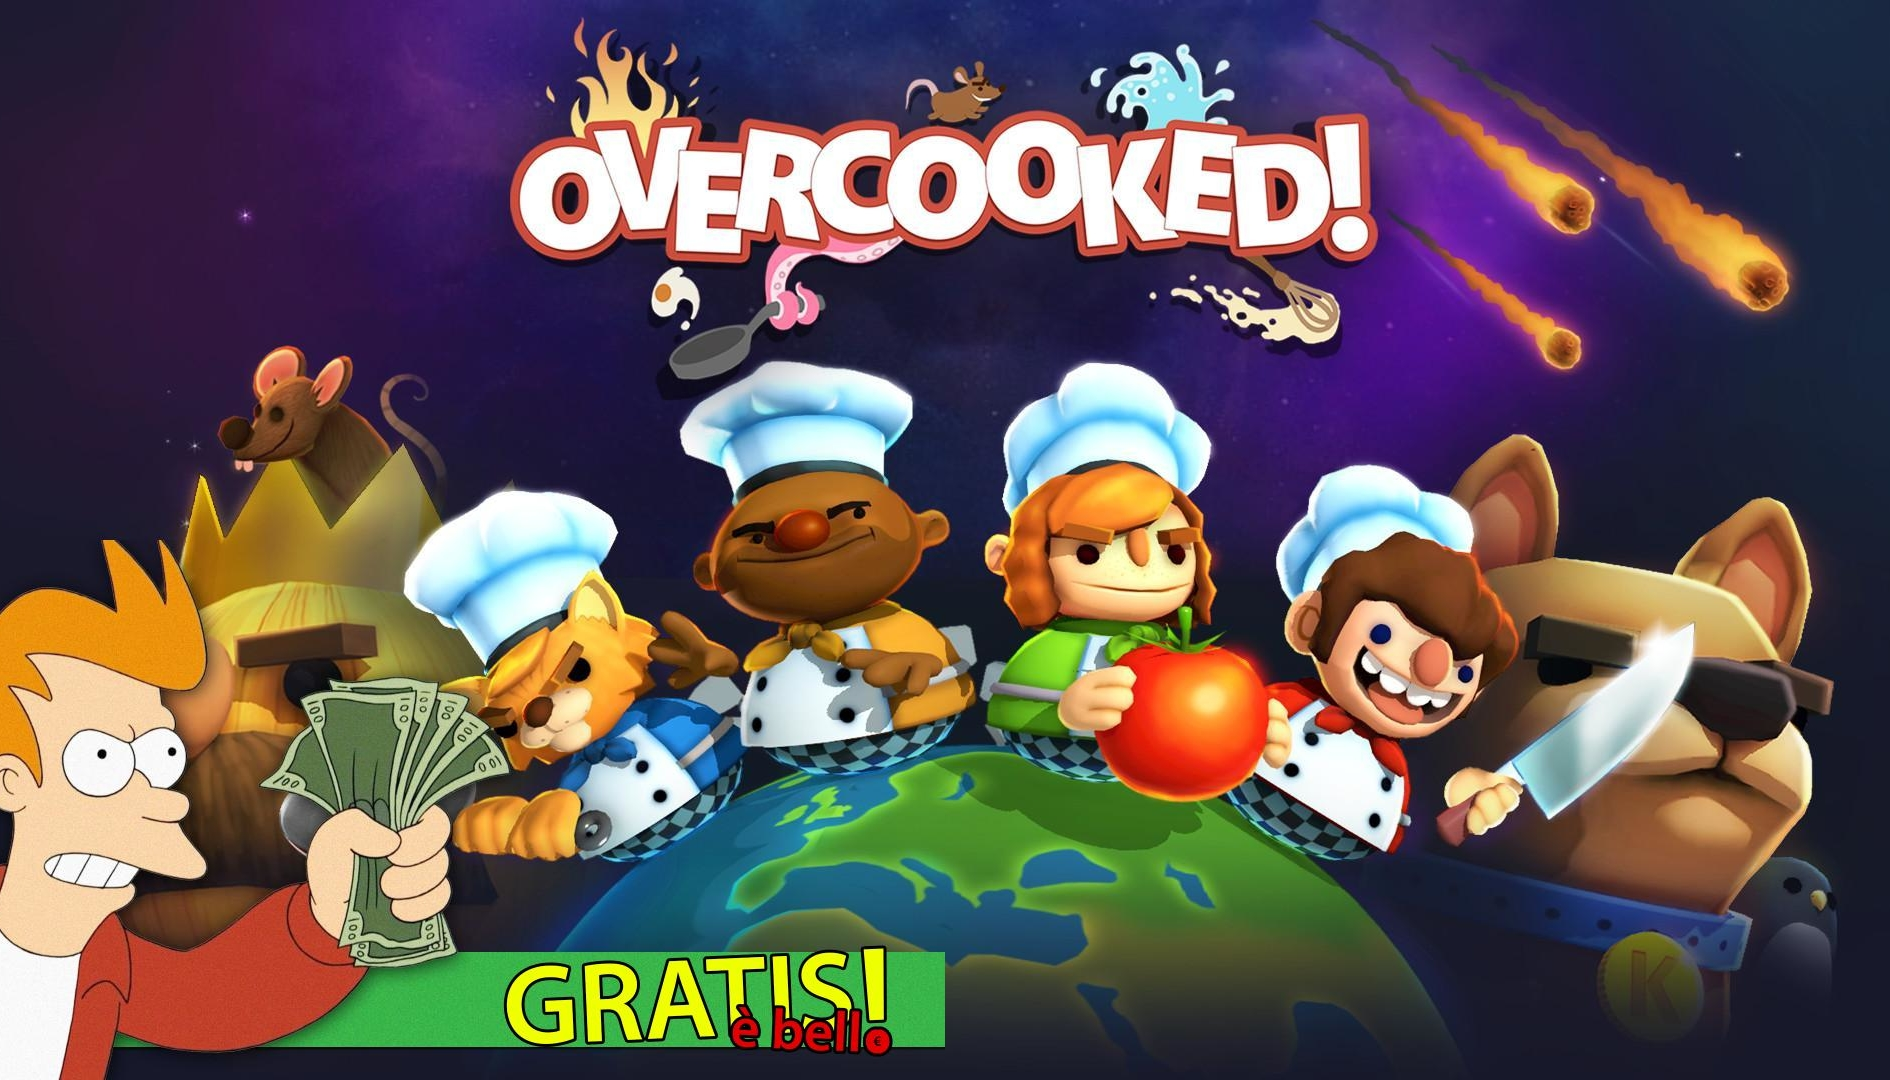 Overcooked gratis su PC per un tempo limitato